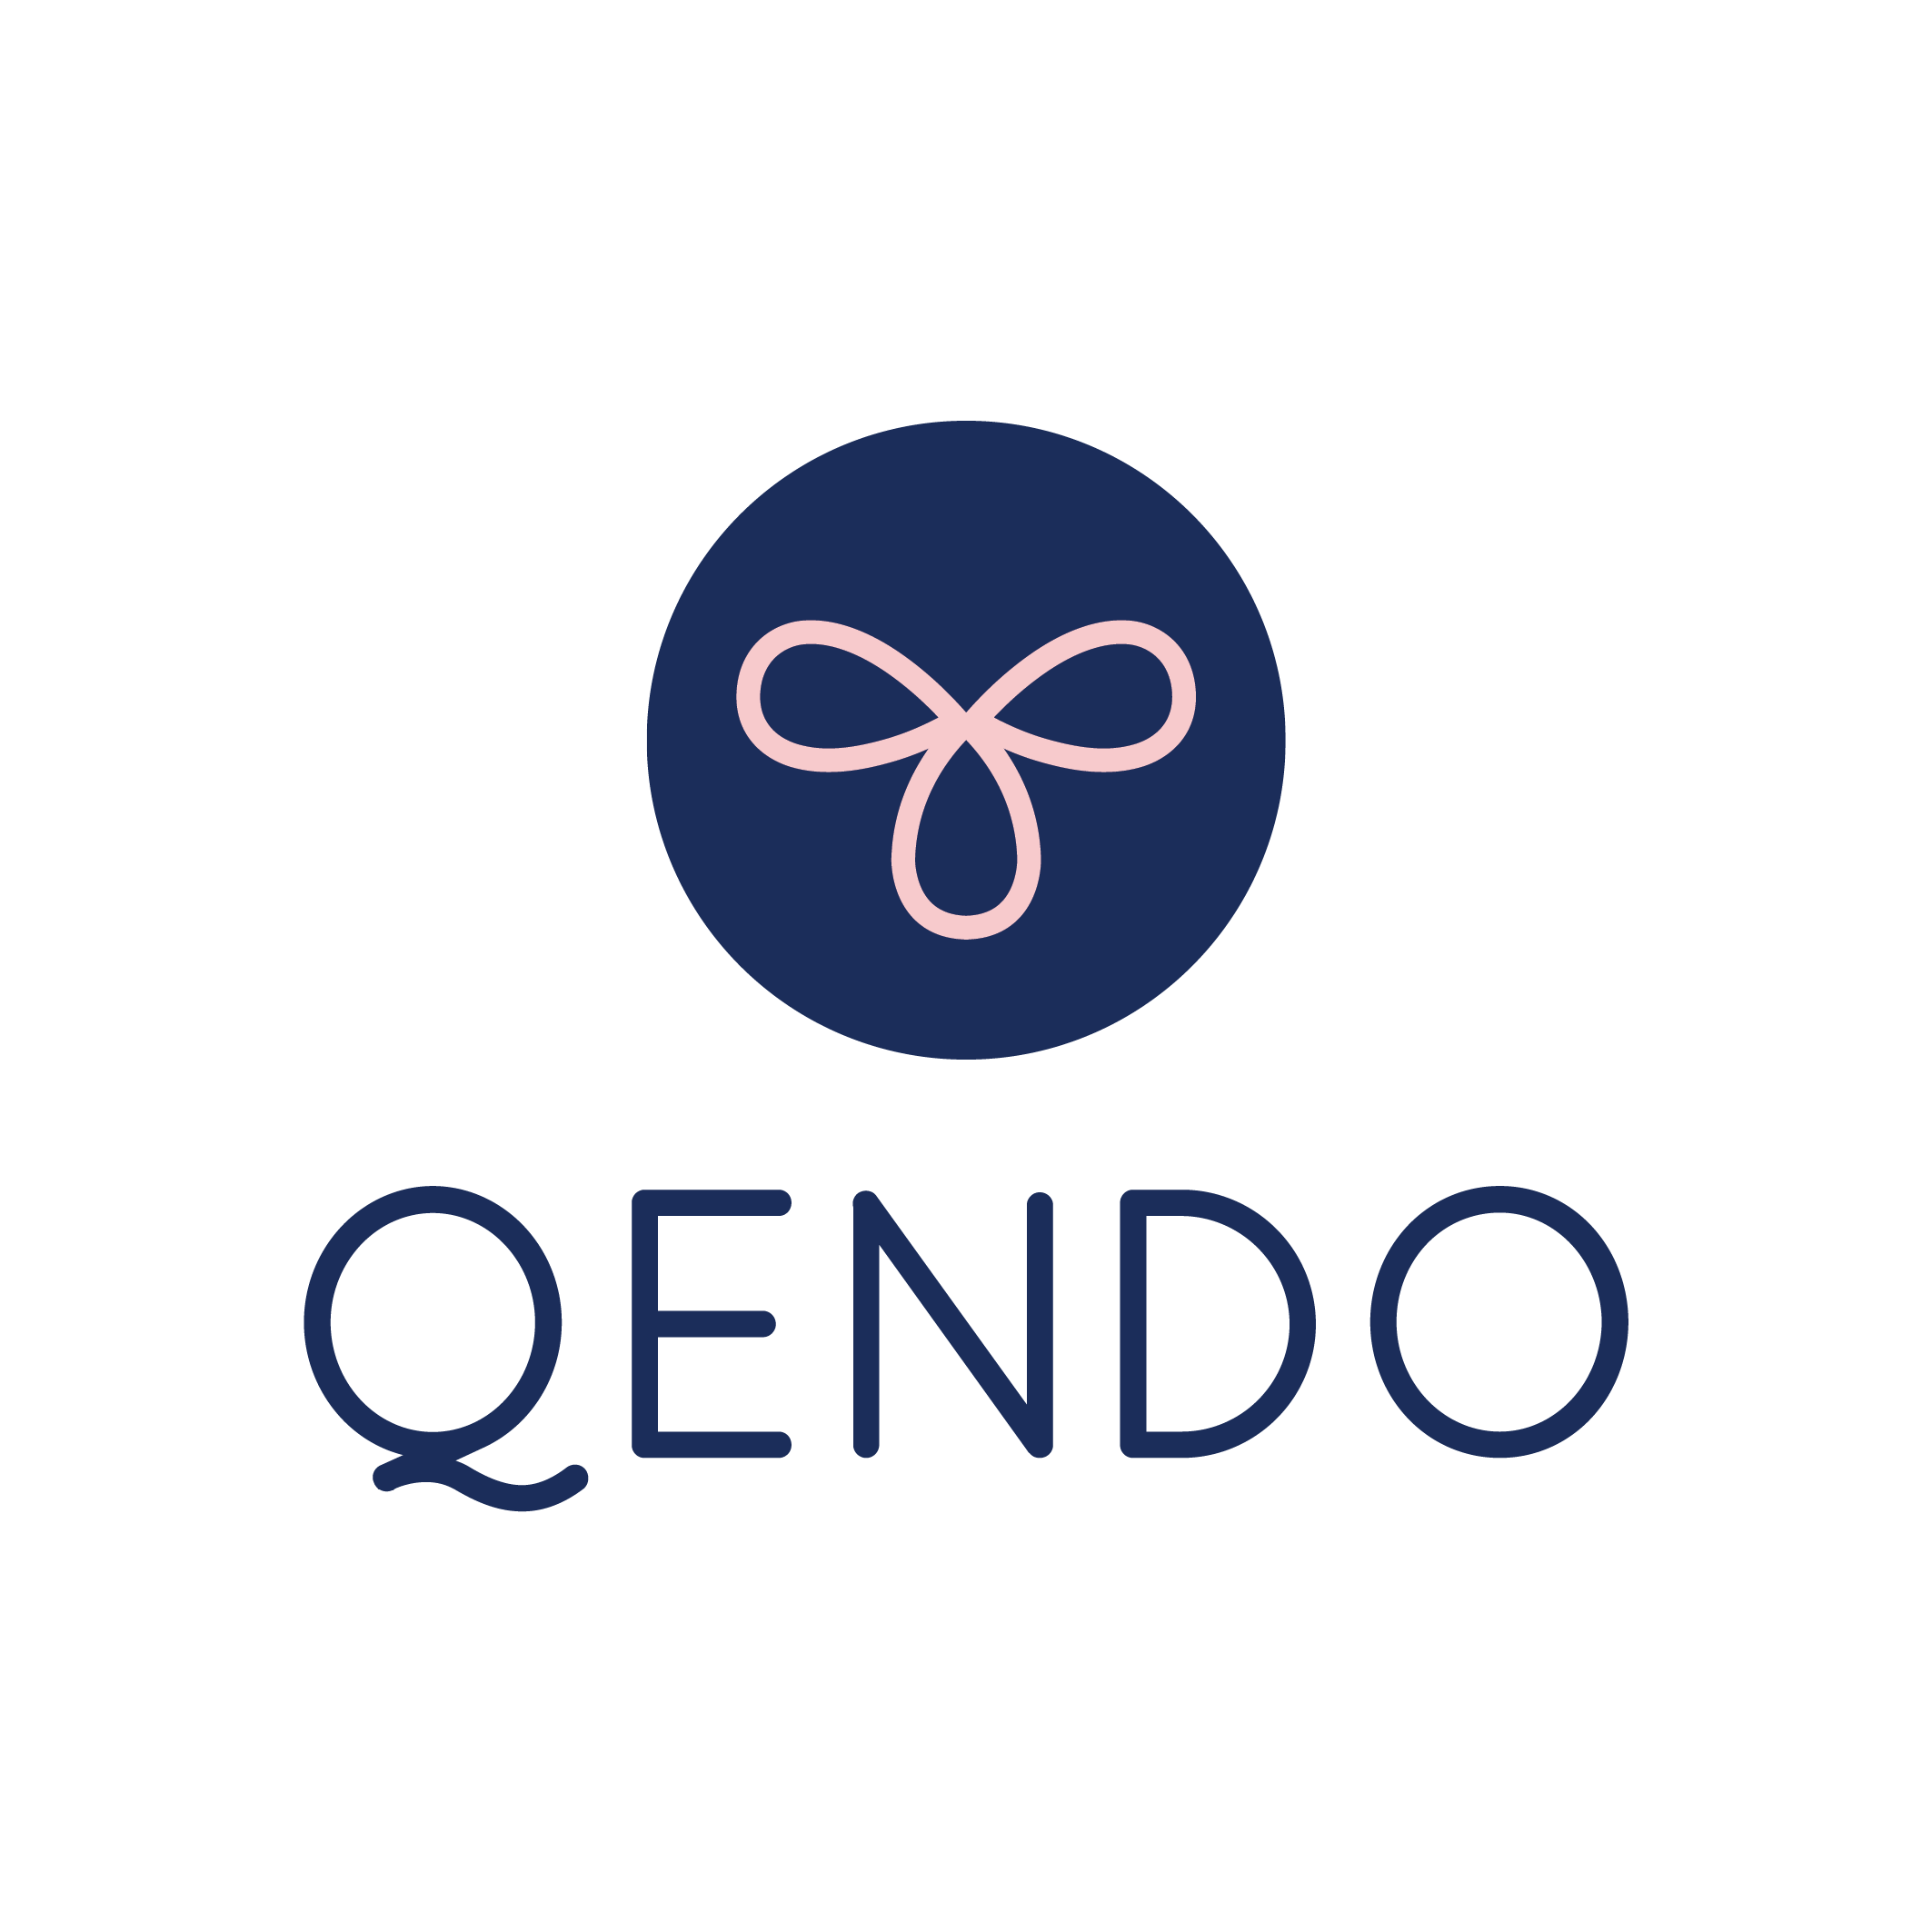 Team Discounts & Offers - You'll find discounts and offers the management board have sourced, just for you. We value all that you do to continue the legacy of QENDO. Thank youCheck them out here